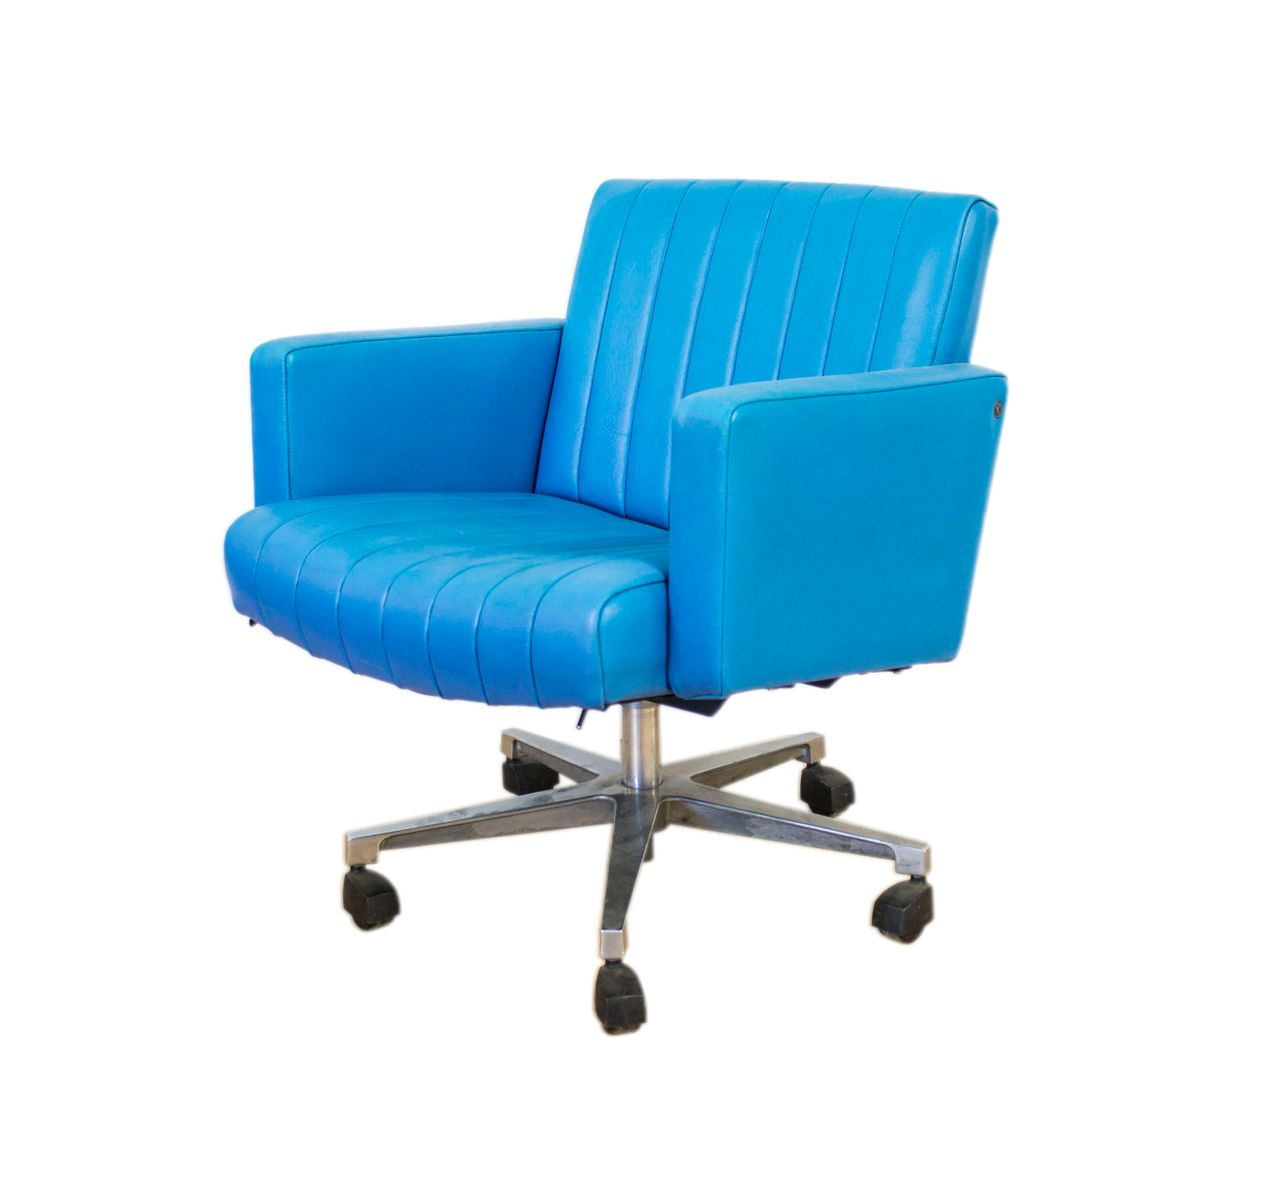 Turquoise Leather Chair Vintage Turquoise Leather Swivel Desk Chair For Sale At Pamono